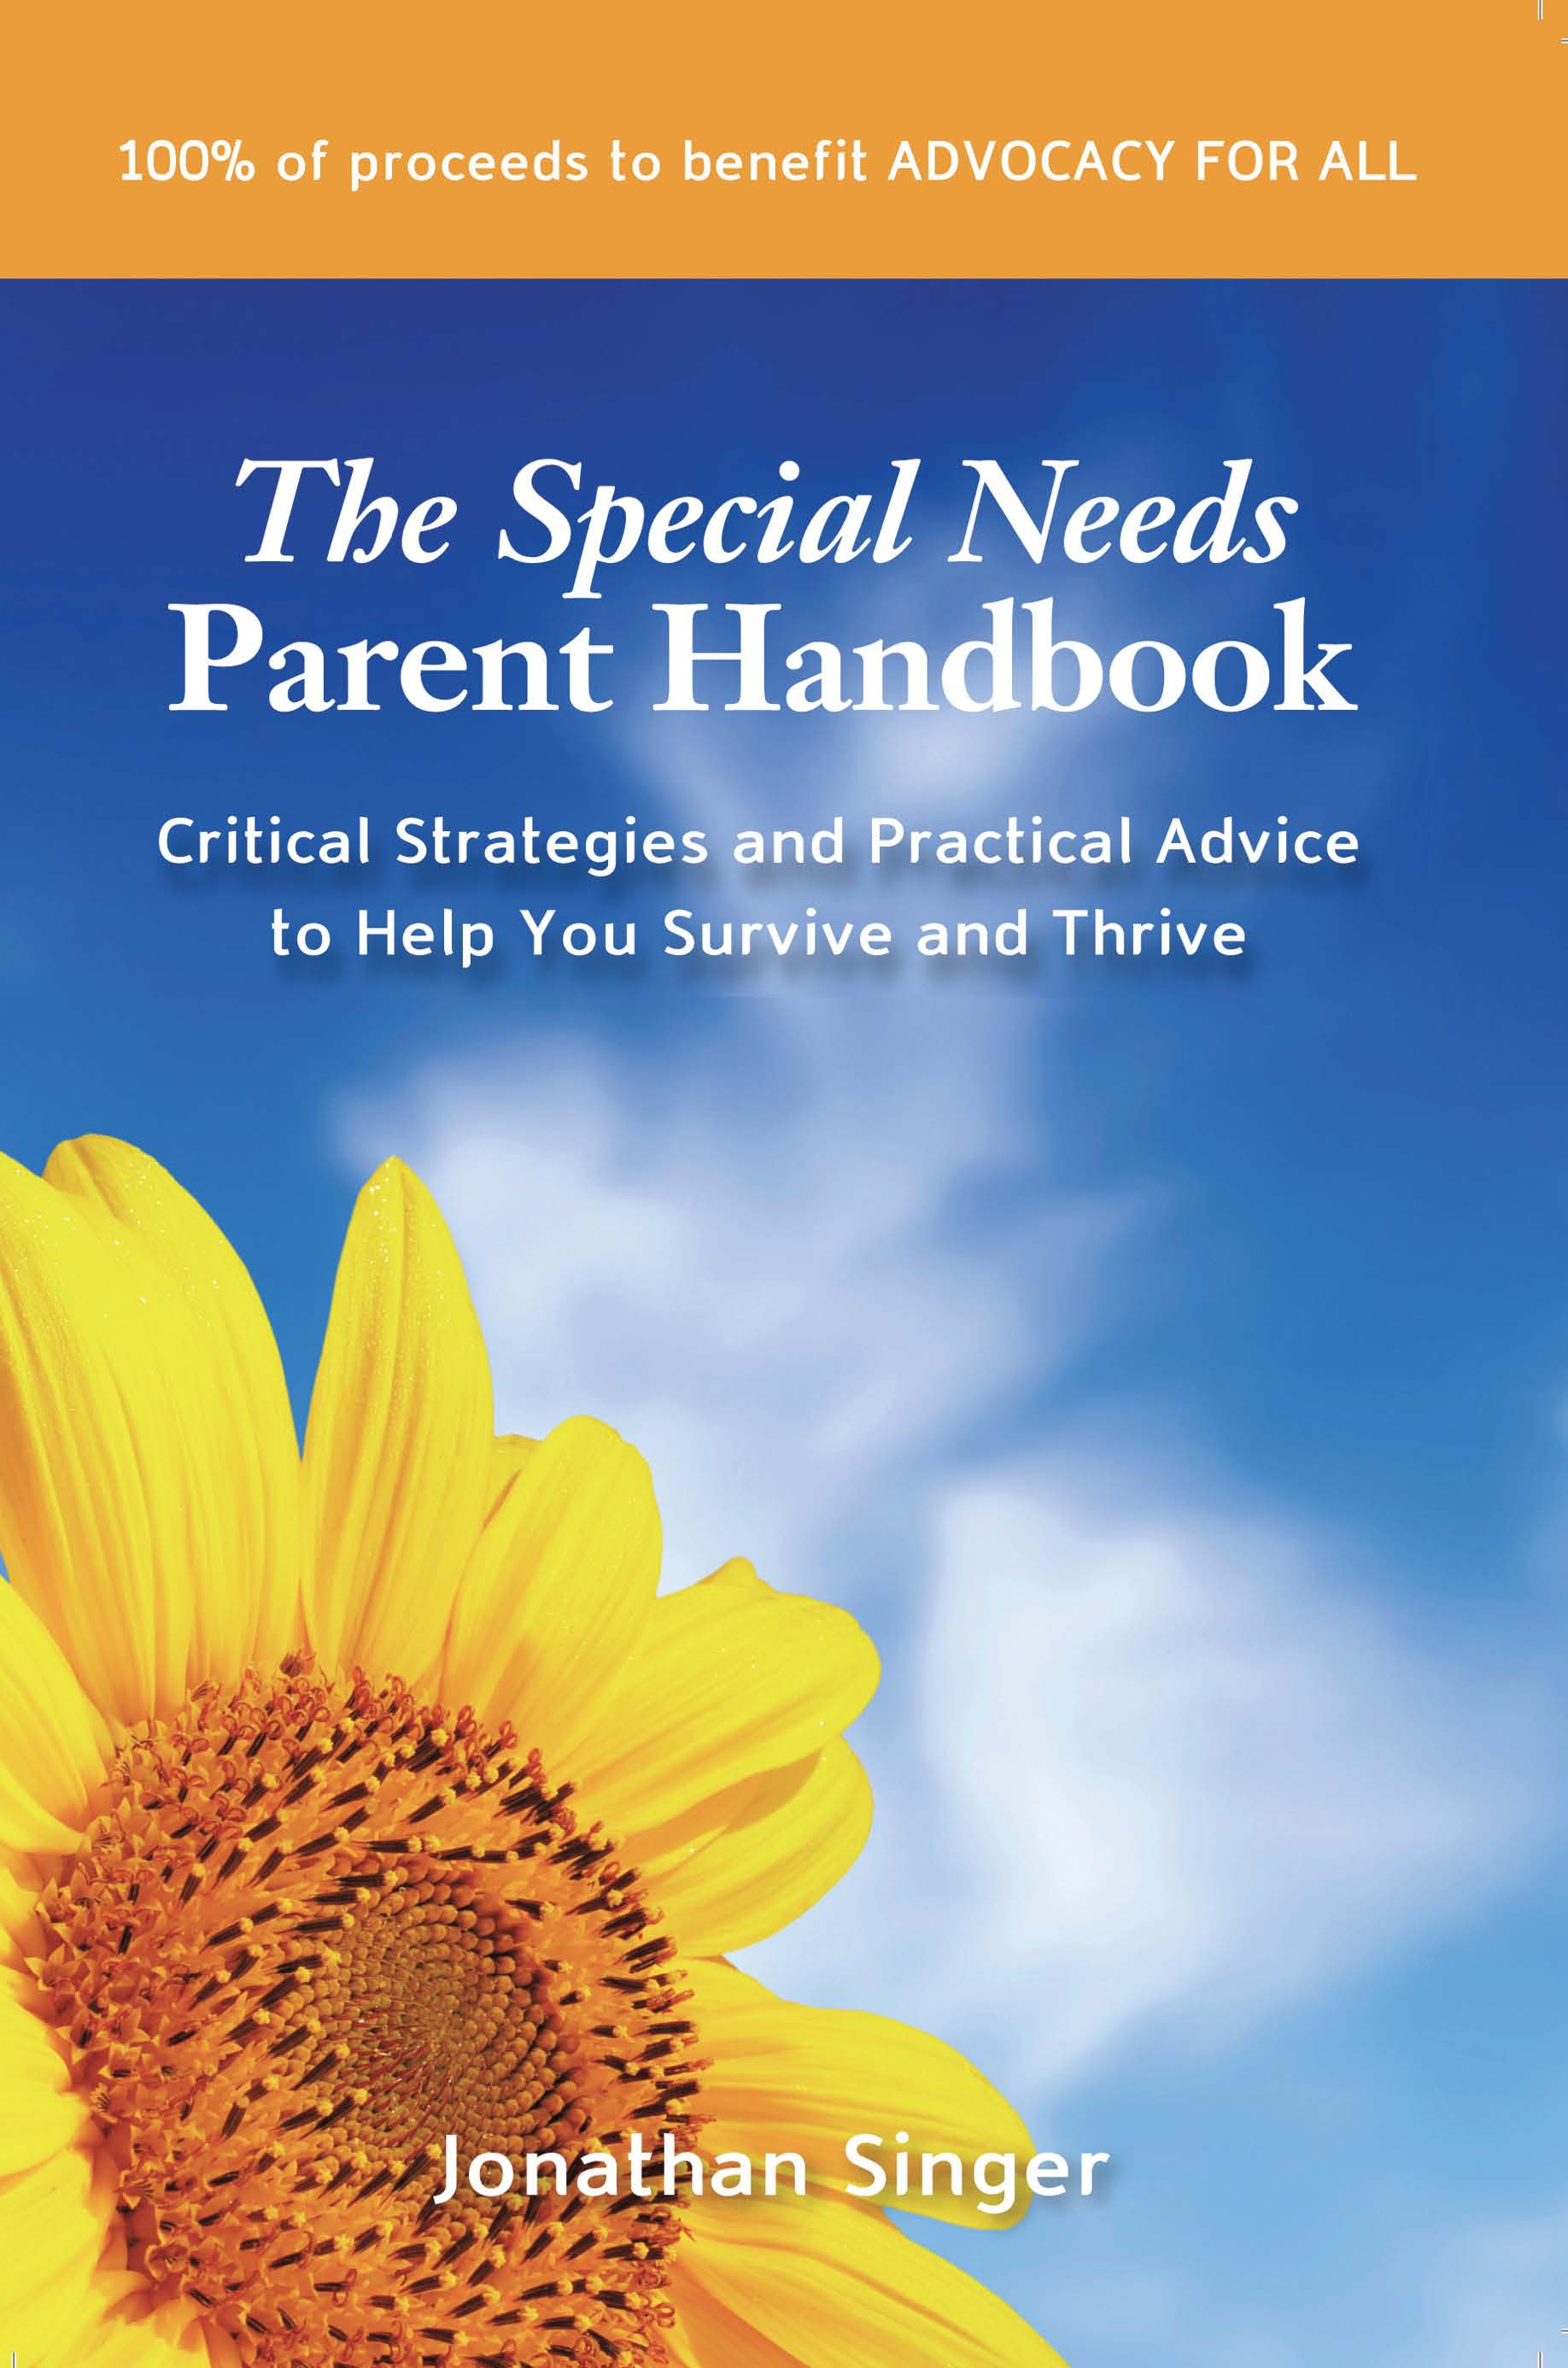 """The Special Needs Parent Handbook: Critical Strategies and Practical Advice to Help You Survive and Thrive"" by Jonathan Singer, where this article is excerpted."